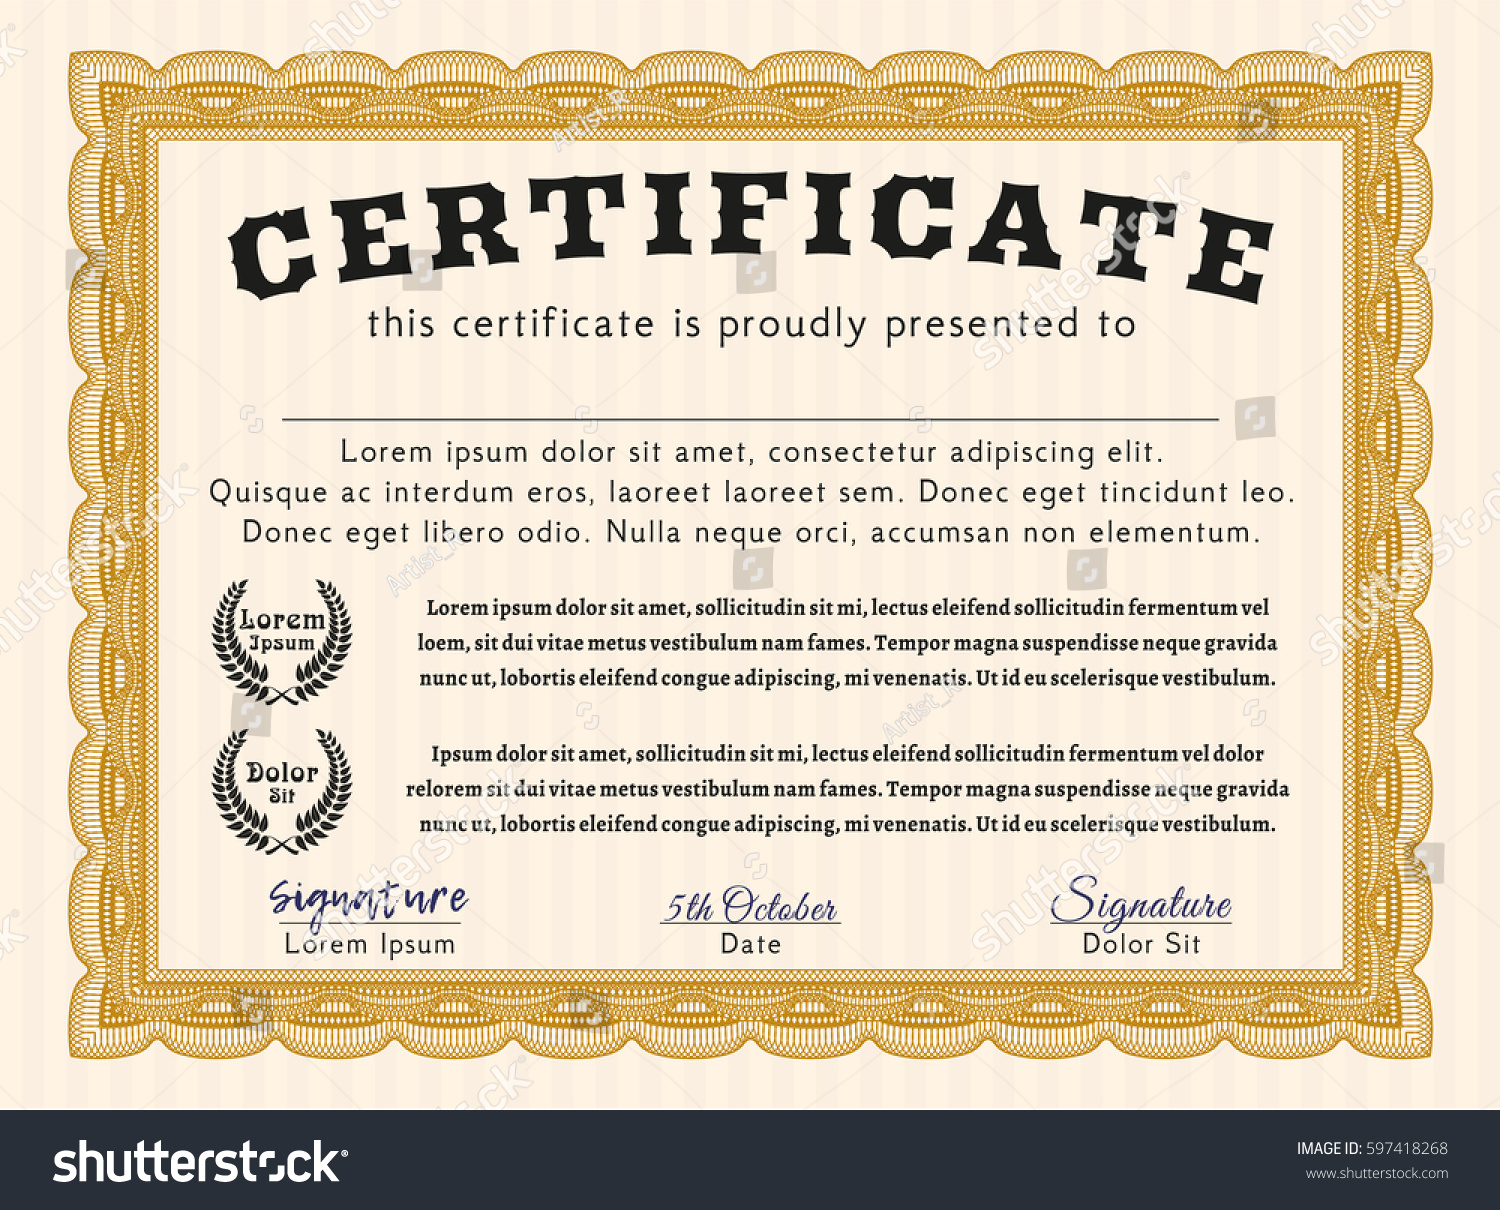 Quran completion certificate template images certificate design jssco certificate templates image collections salary slip word format quran completion certificate template image collections stock 1betcityfo Choice Image